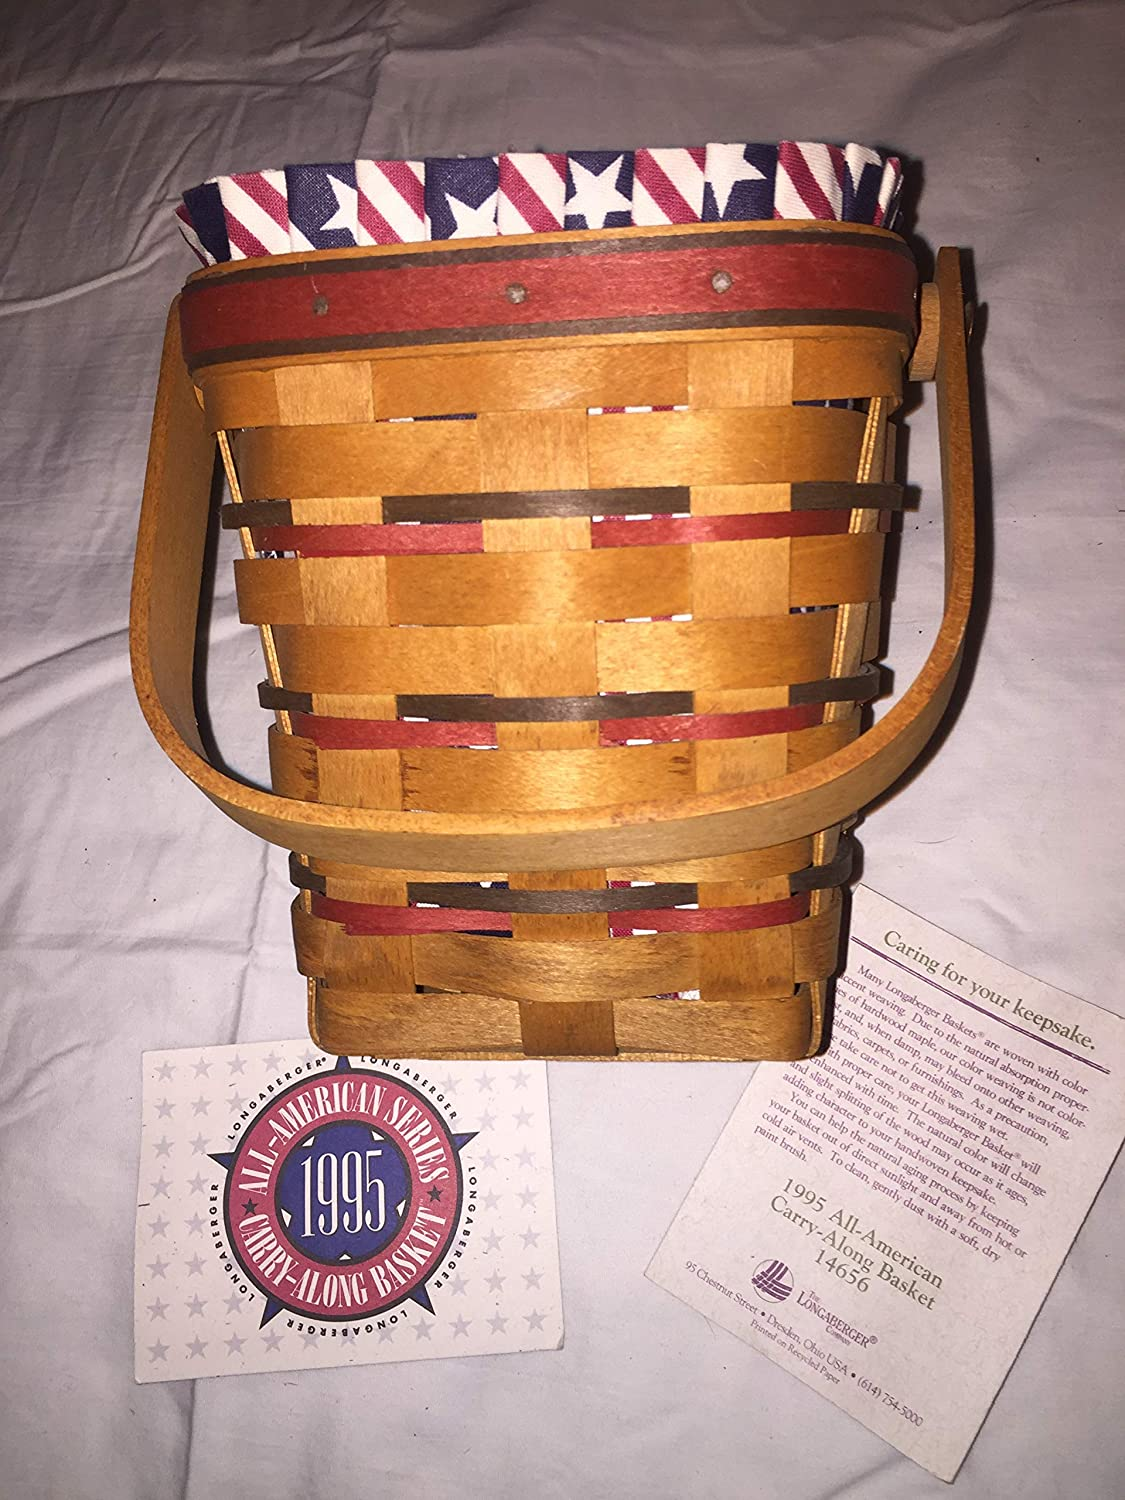 Longaberger All-American Carry Along Basket with Protector, Liner, and Product Cards